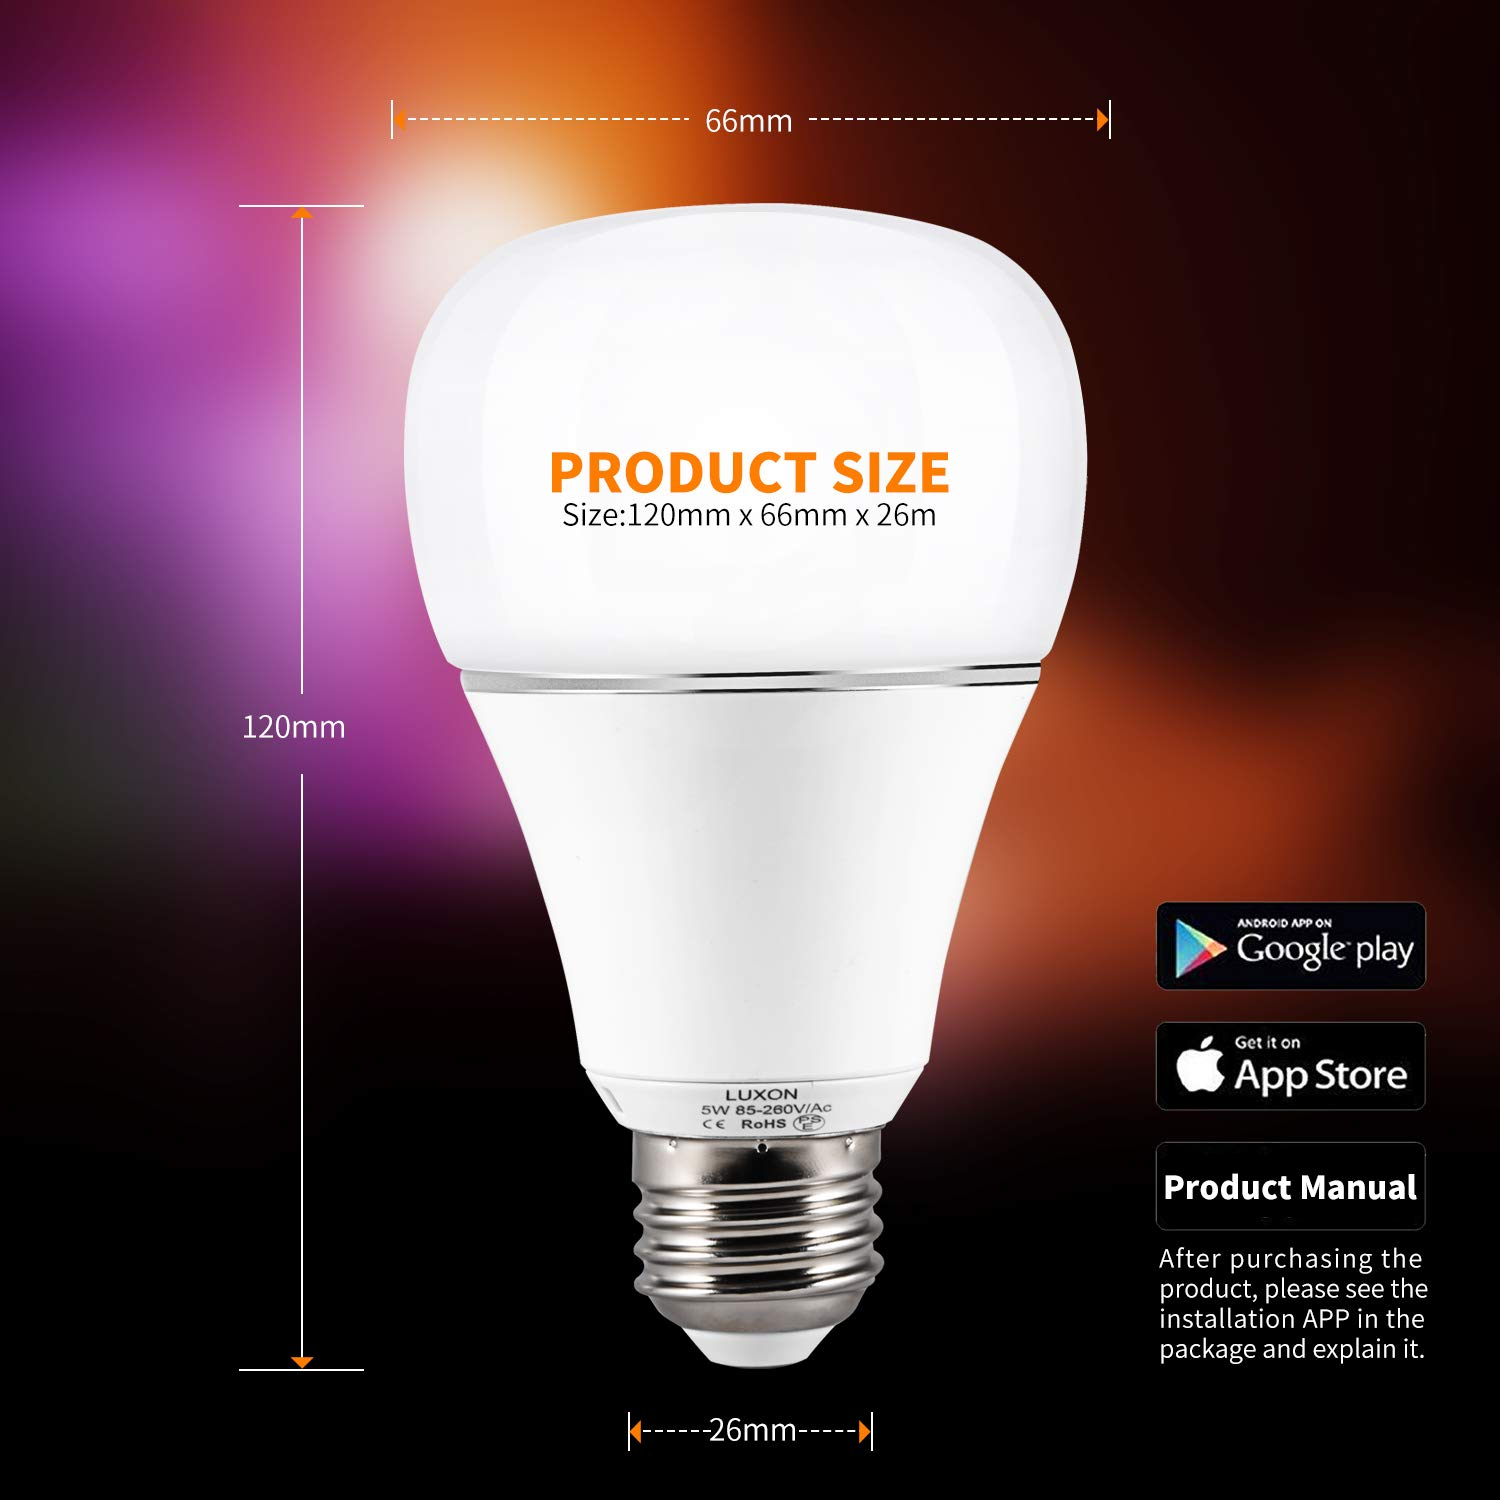 Smart WI-FI LED Light Bulb RGBW Color Changing E26 Base Smart Dimmable Light Bulb Smartphone Controlled Work with Amazon Alexa/ Google Home by LUXON by LUXON (Image #7)